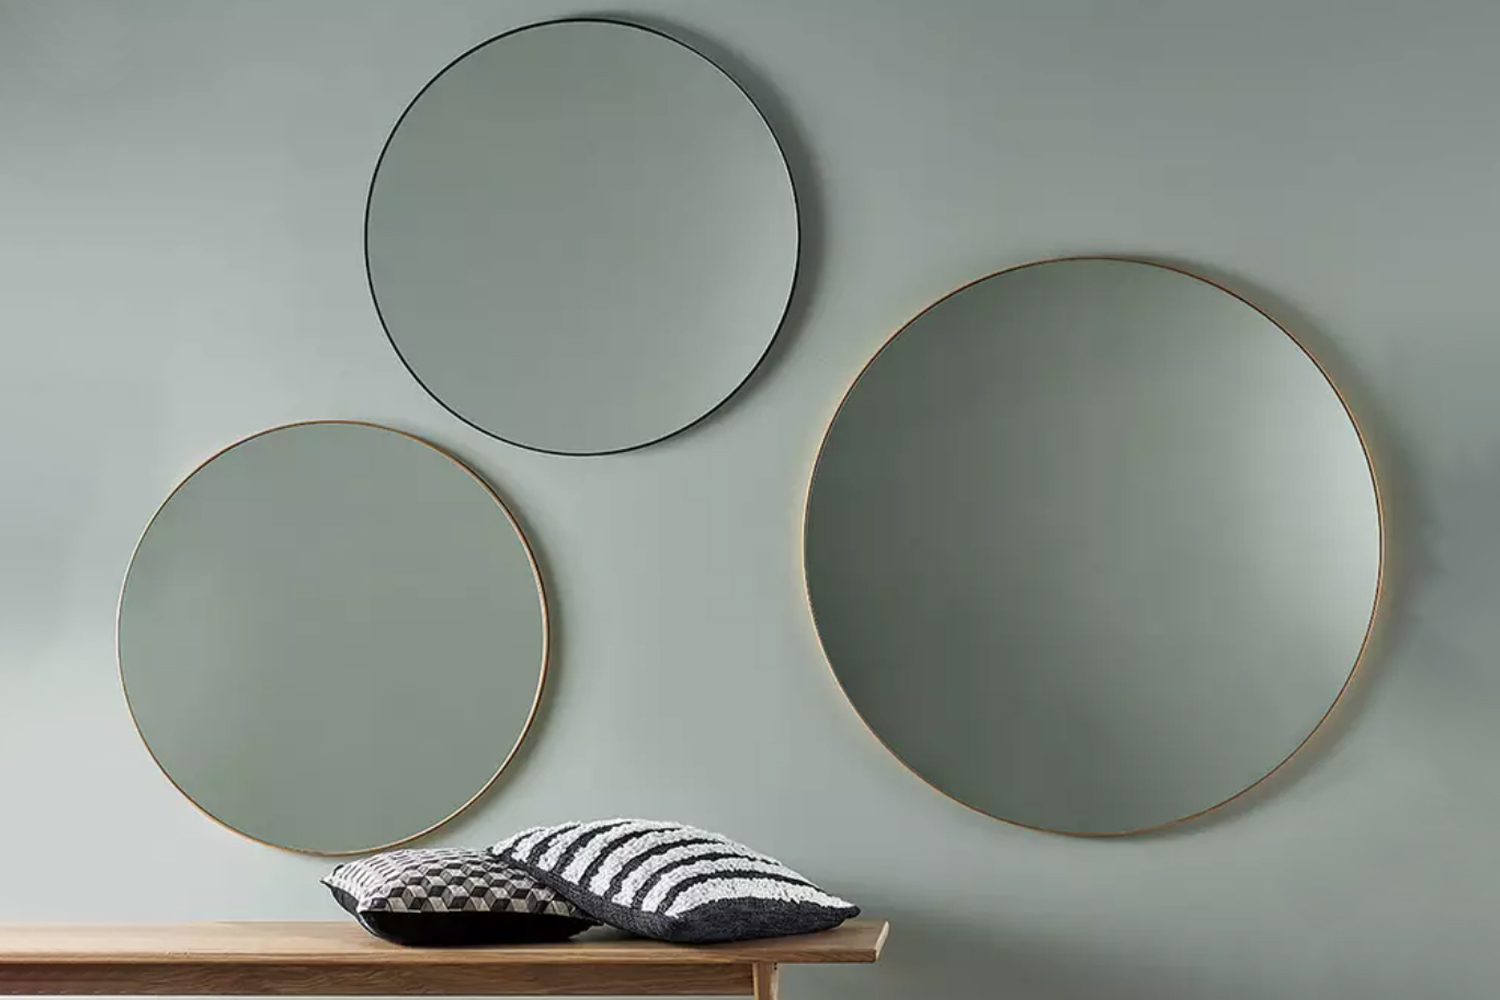 The Habitat Large Round Metal Mirror in gold is £0 and is also available in black. It&#8